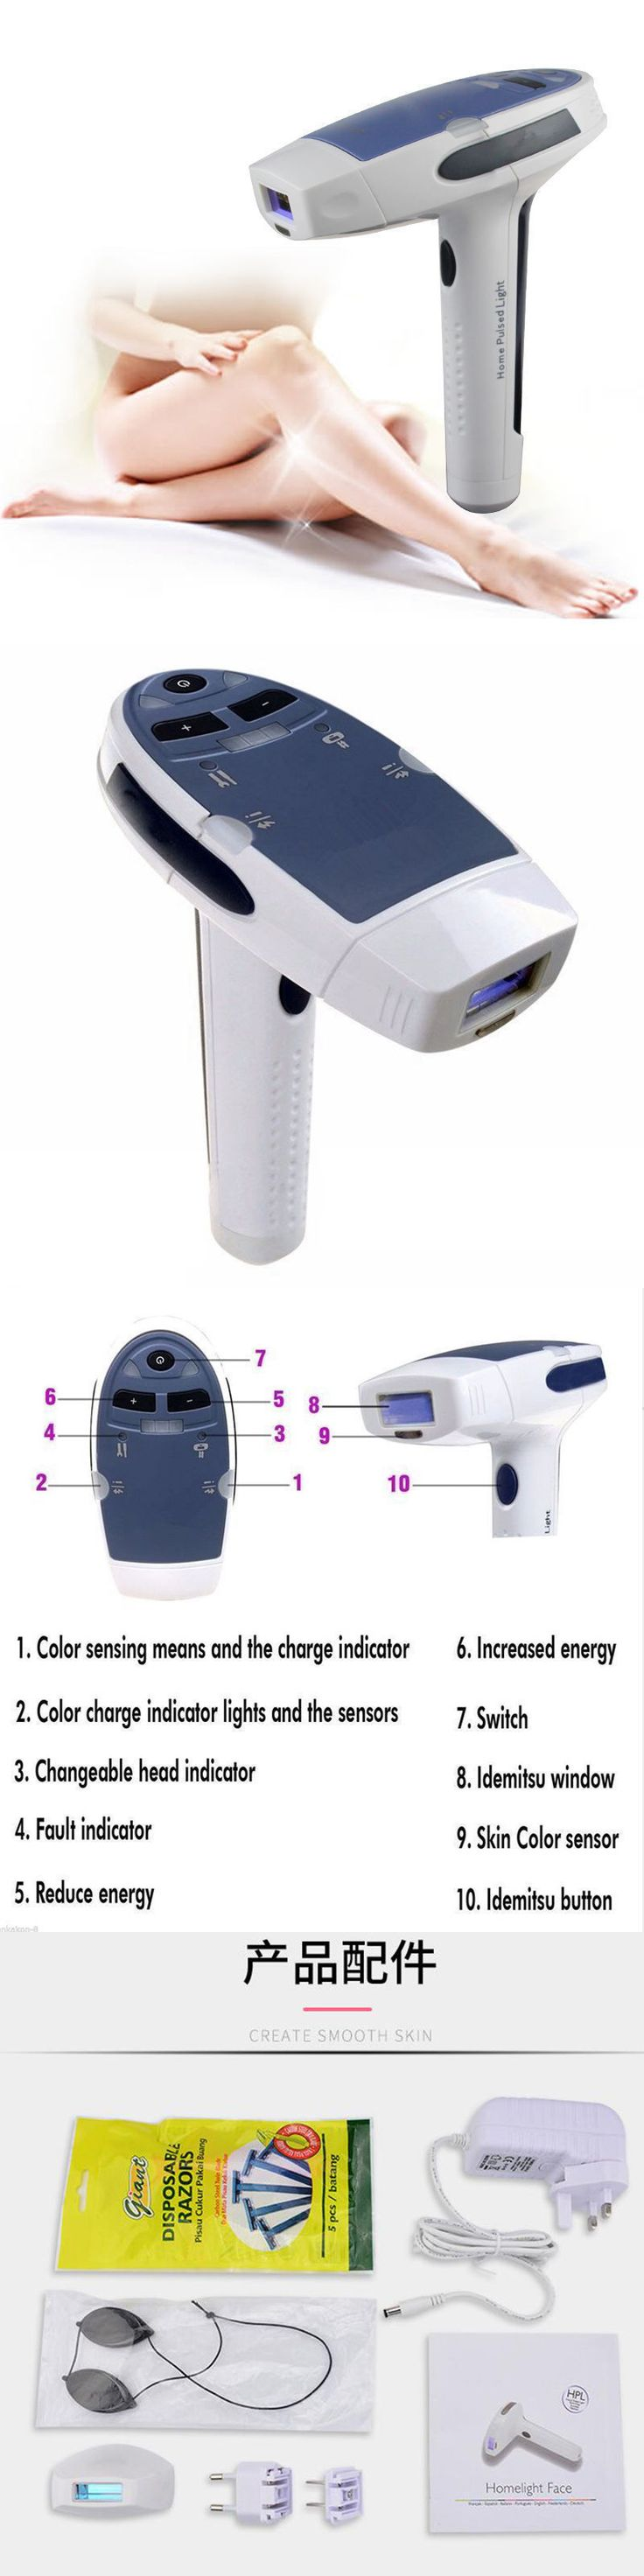 Laser Hair Removal and IPL: New Laser Ipl Permanent Hair Removal Machine For Face And Body Lady Beauty Home -> BUY IT NOW ONLY: $66.12 on eBay!